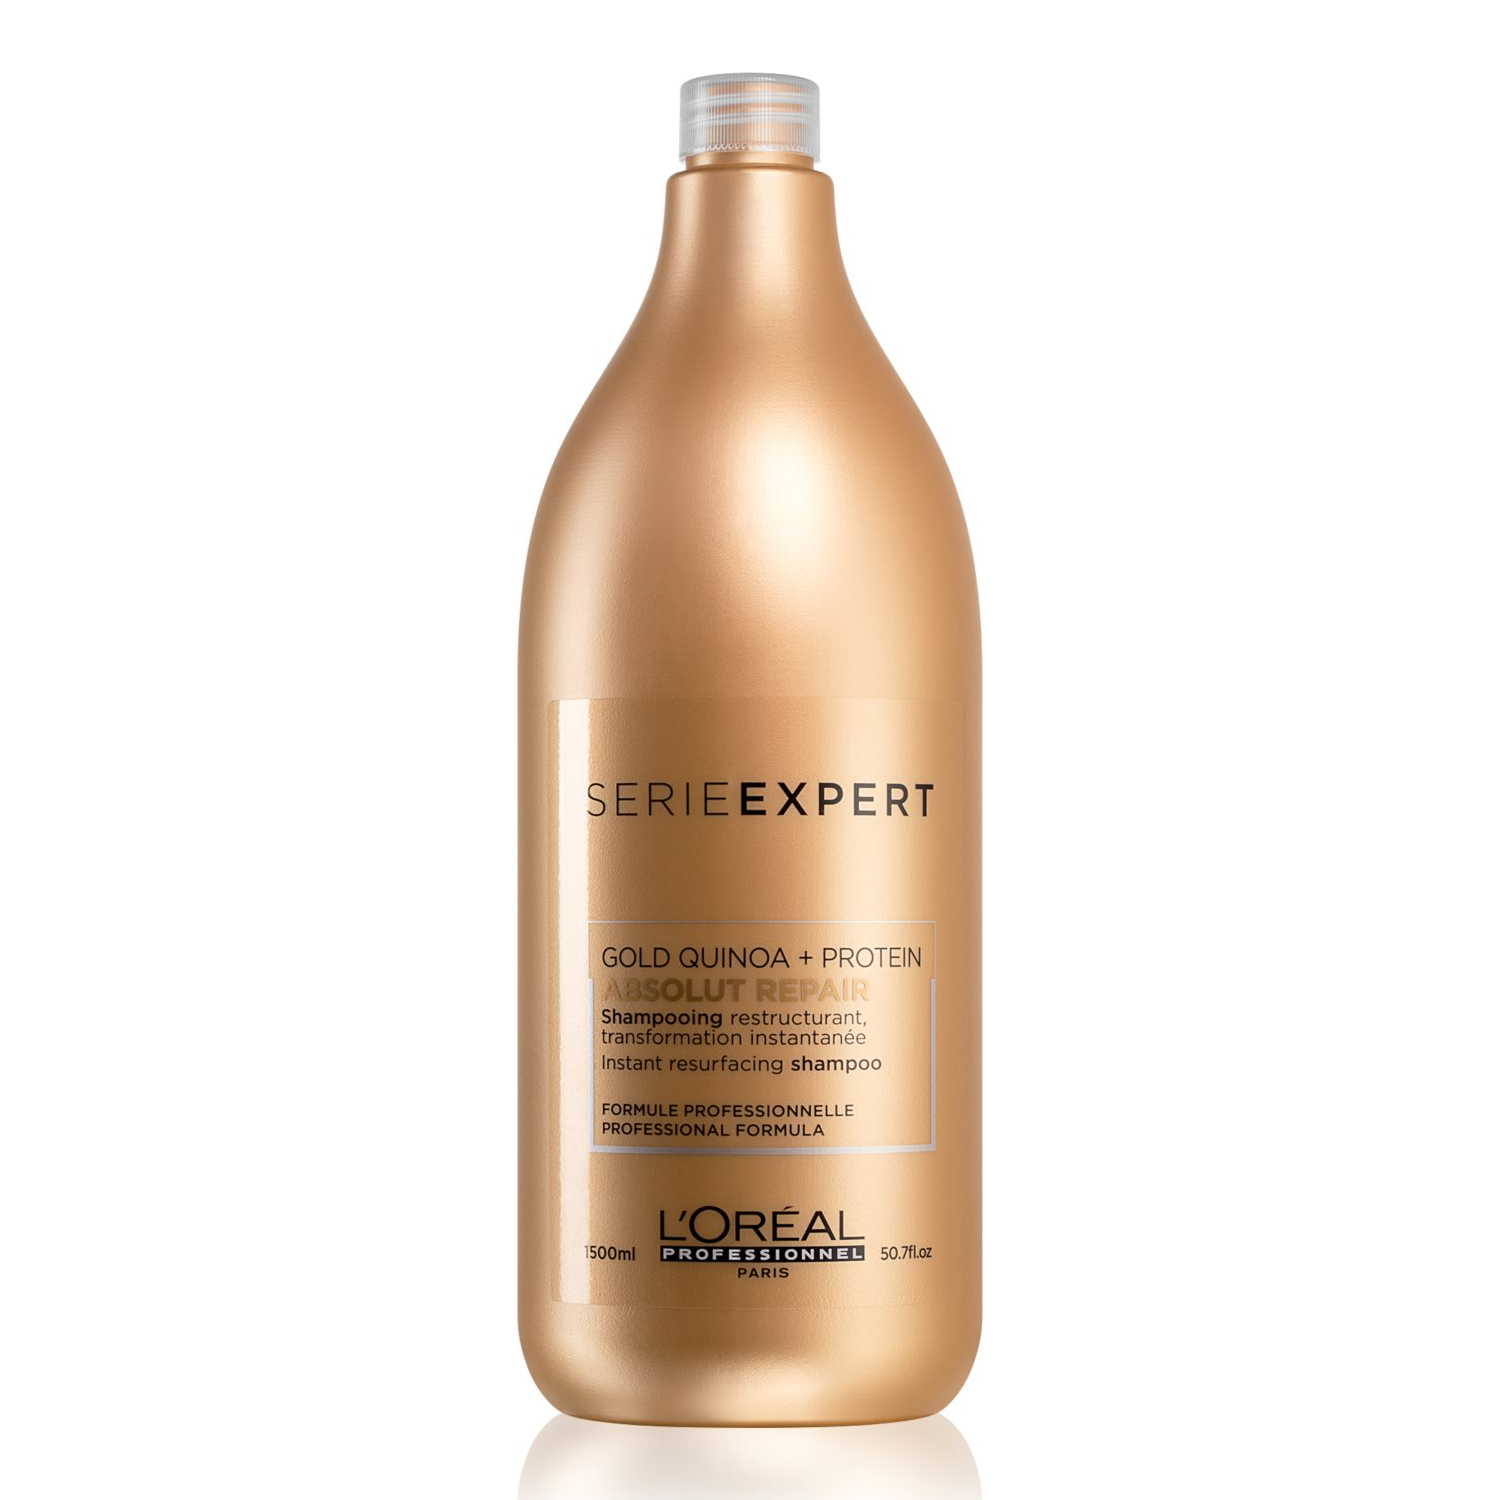 L'Oreal Gold Shampoo 1500ml | Hermossa.co.uk